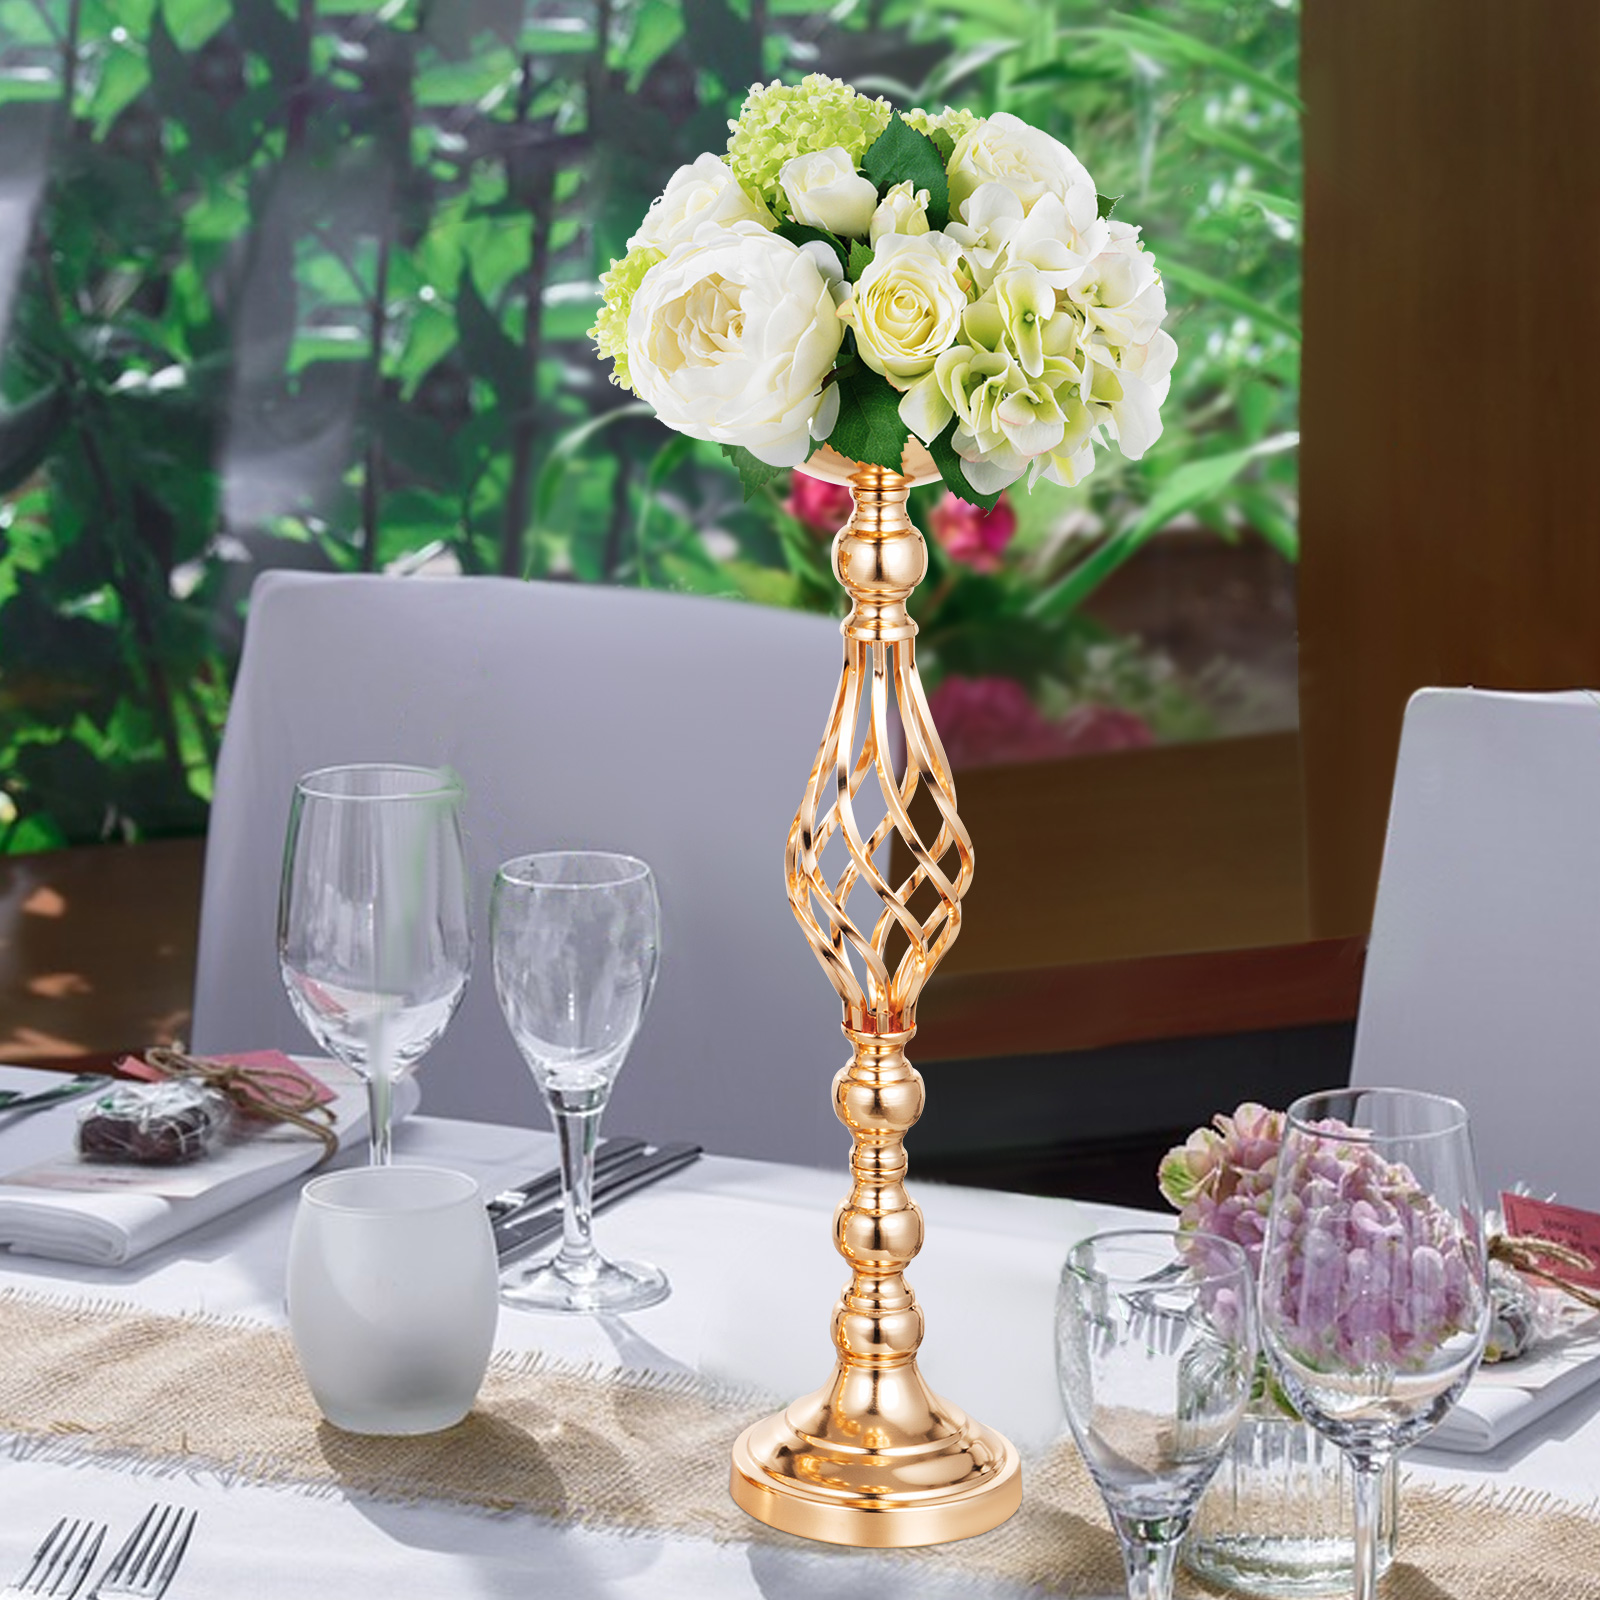 Flower-Rack-for-Wedding-Metal-Candle-Stand-4-11pcs-Centerpiece-Flower-Vase thumbnail 105